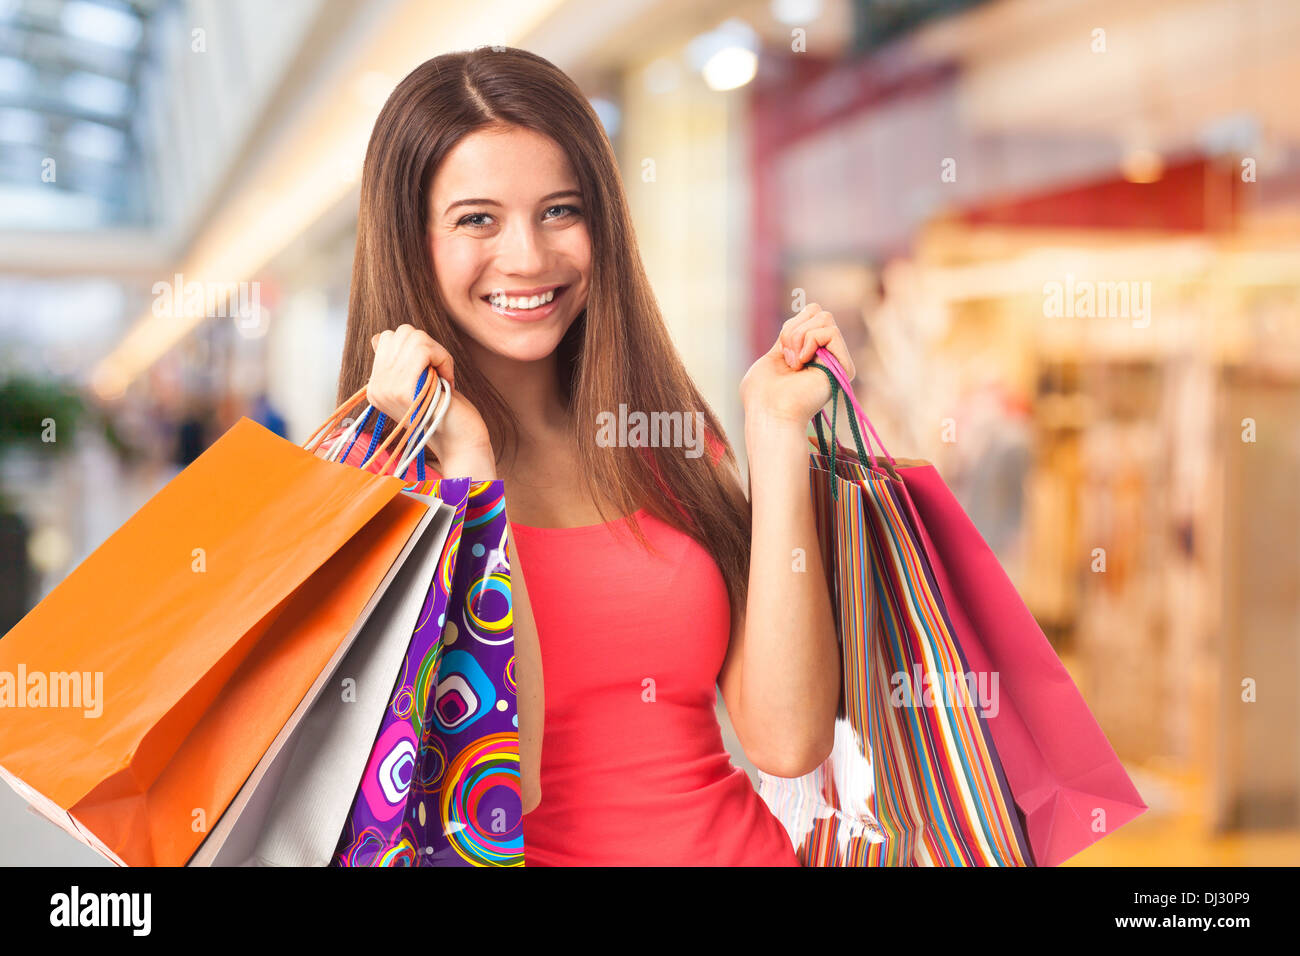 Portrait of a pretty young woman holding shopping bags in a supermarket - Stock Image